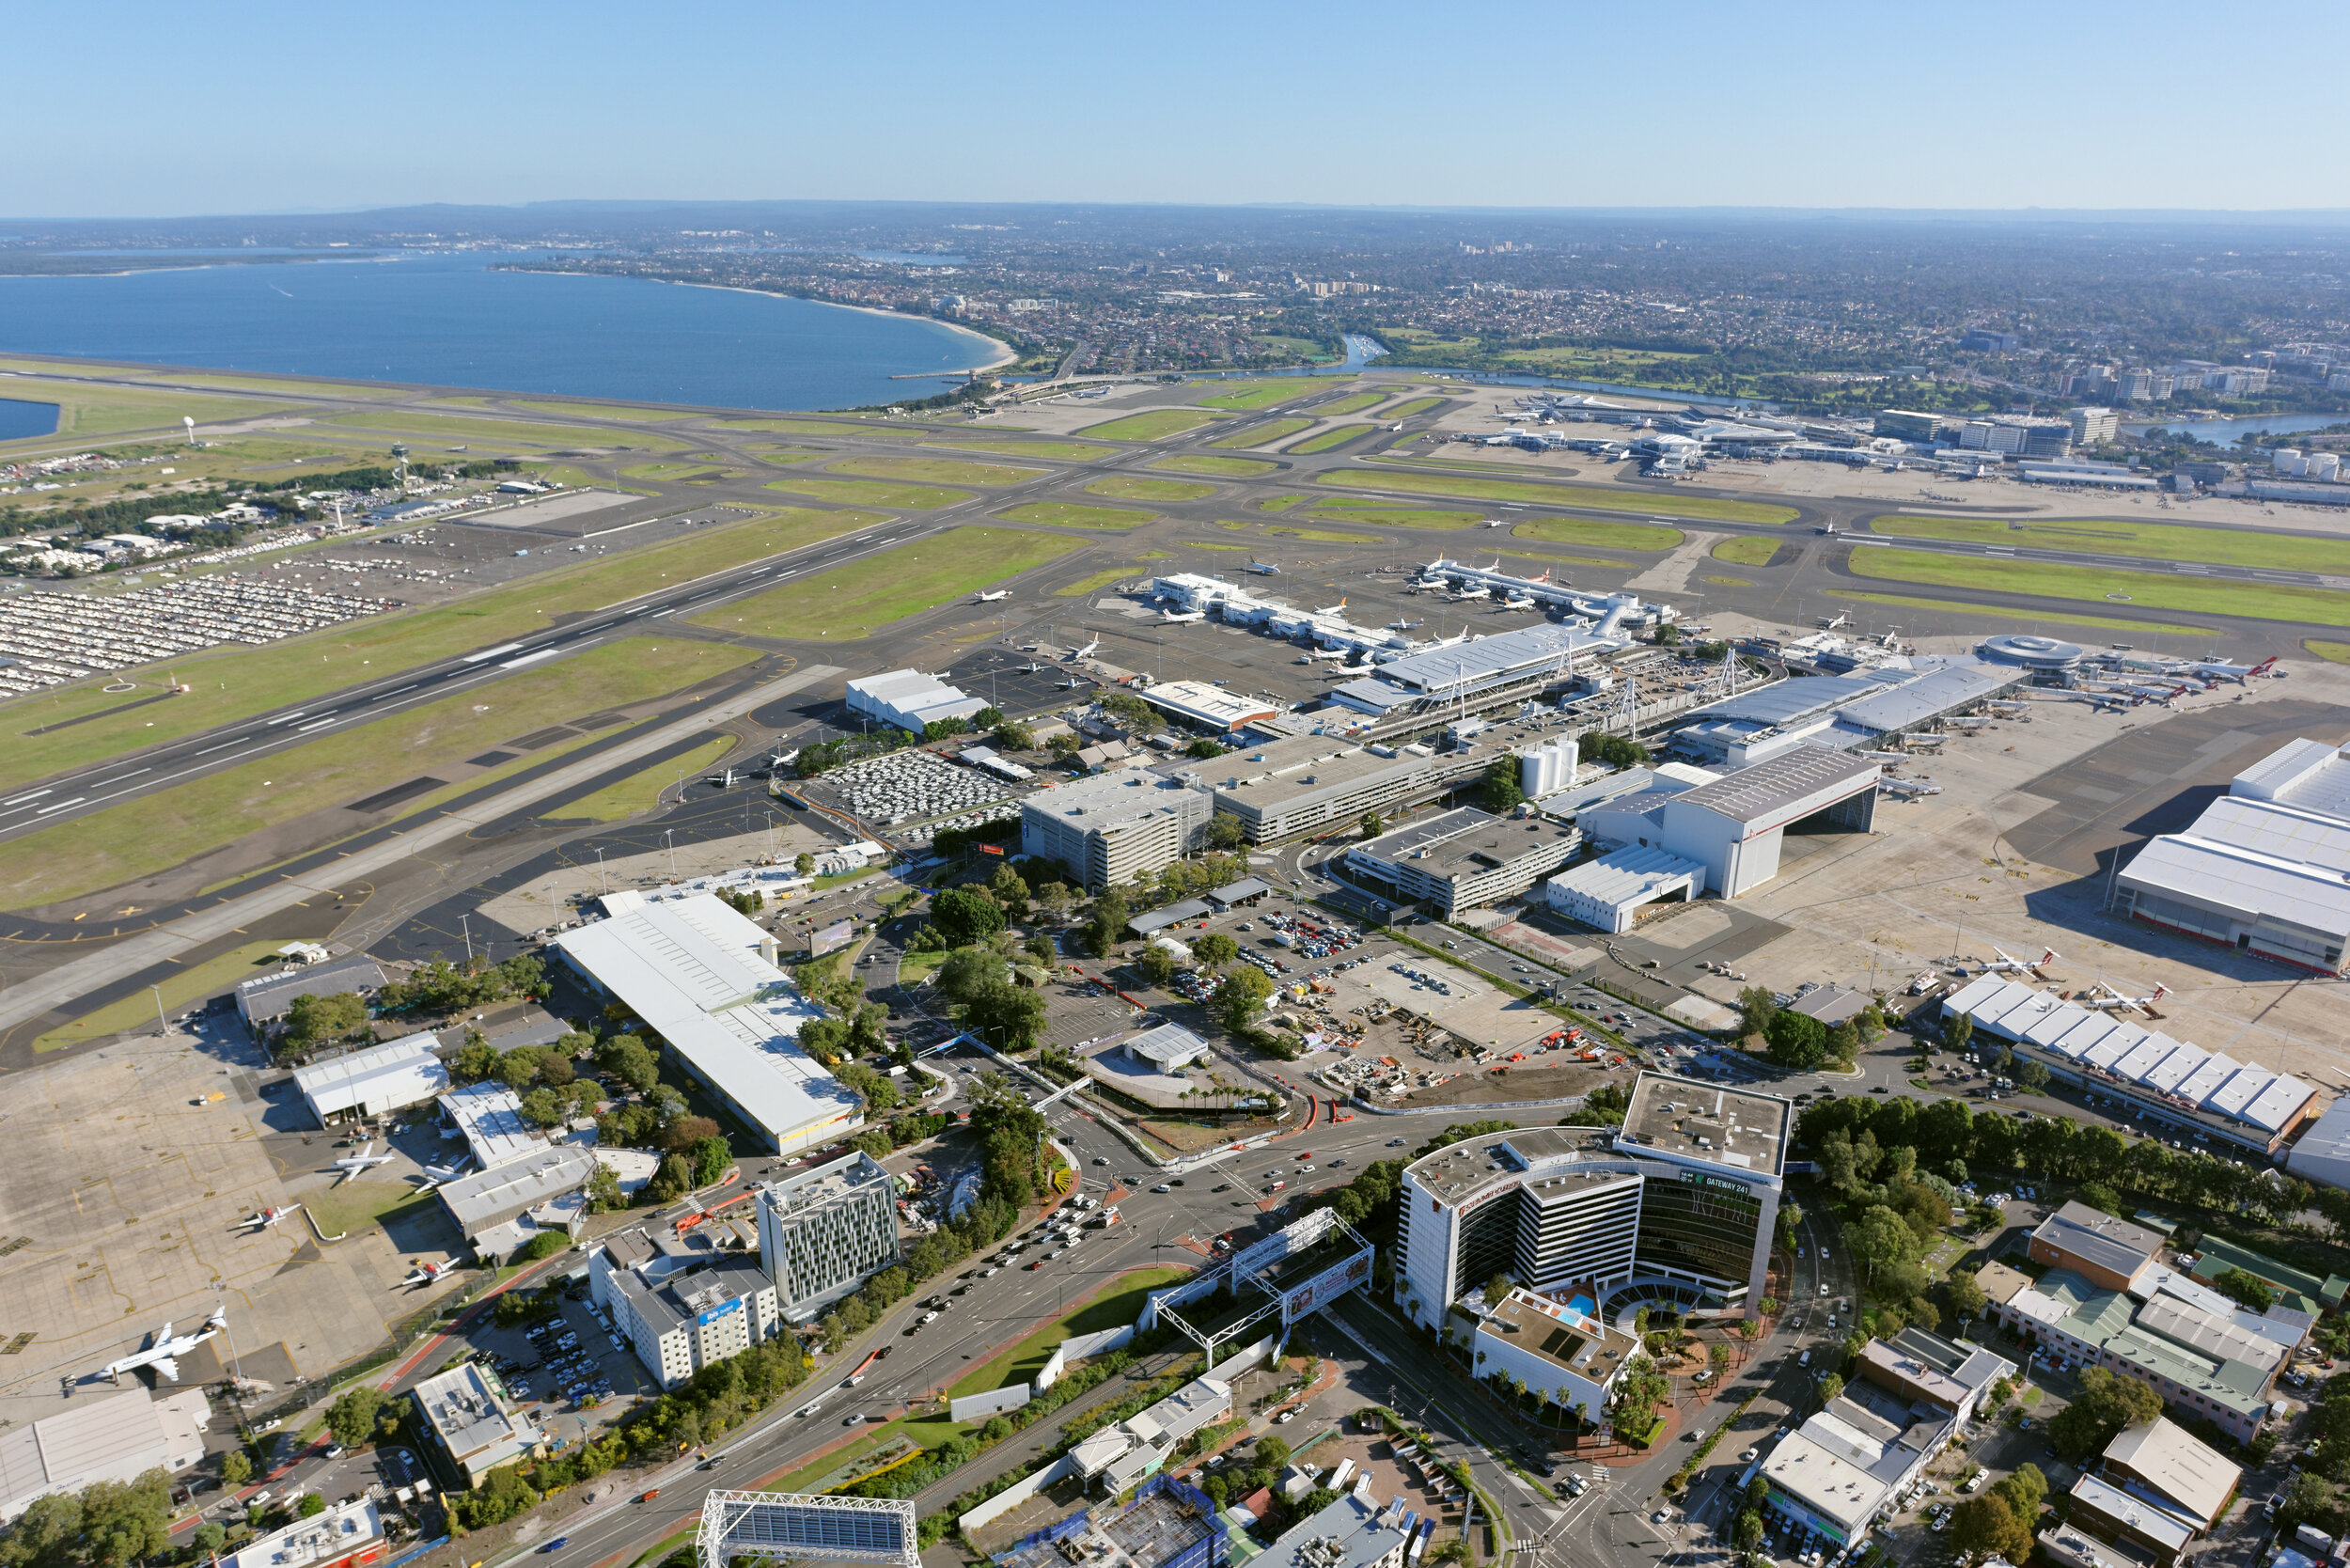 Level 1, Mapping - Level 1 accreditation requires the airport to have a policy commitment to emission reductions, as well as a carbon footprint of scope 1 & 2 emissions.